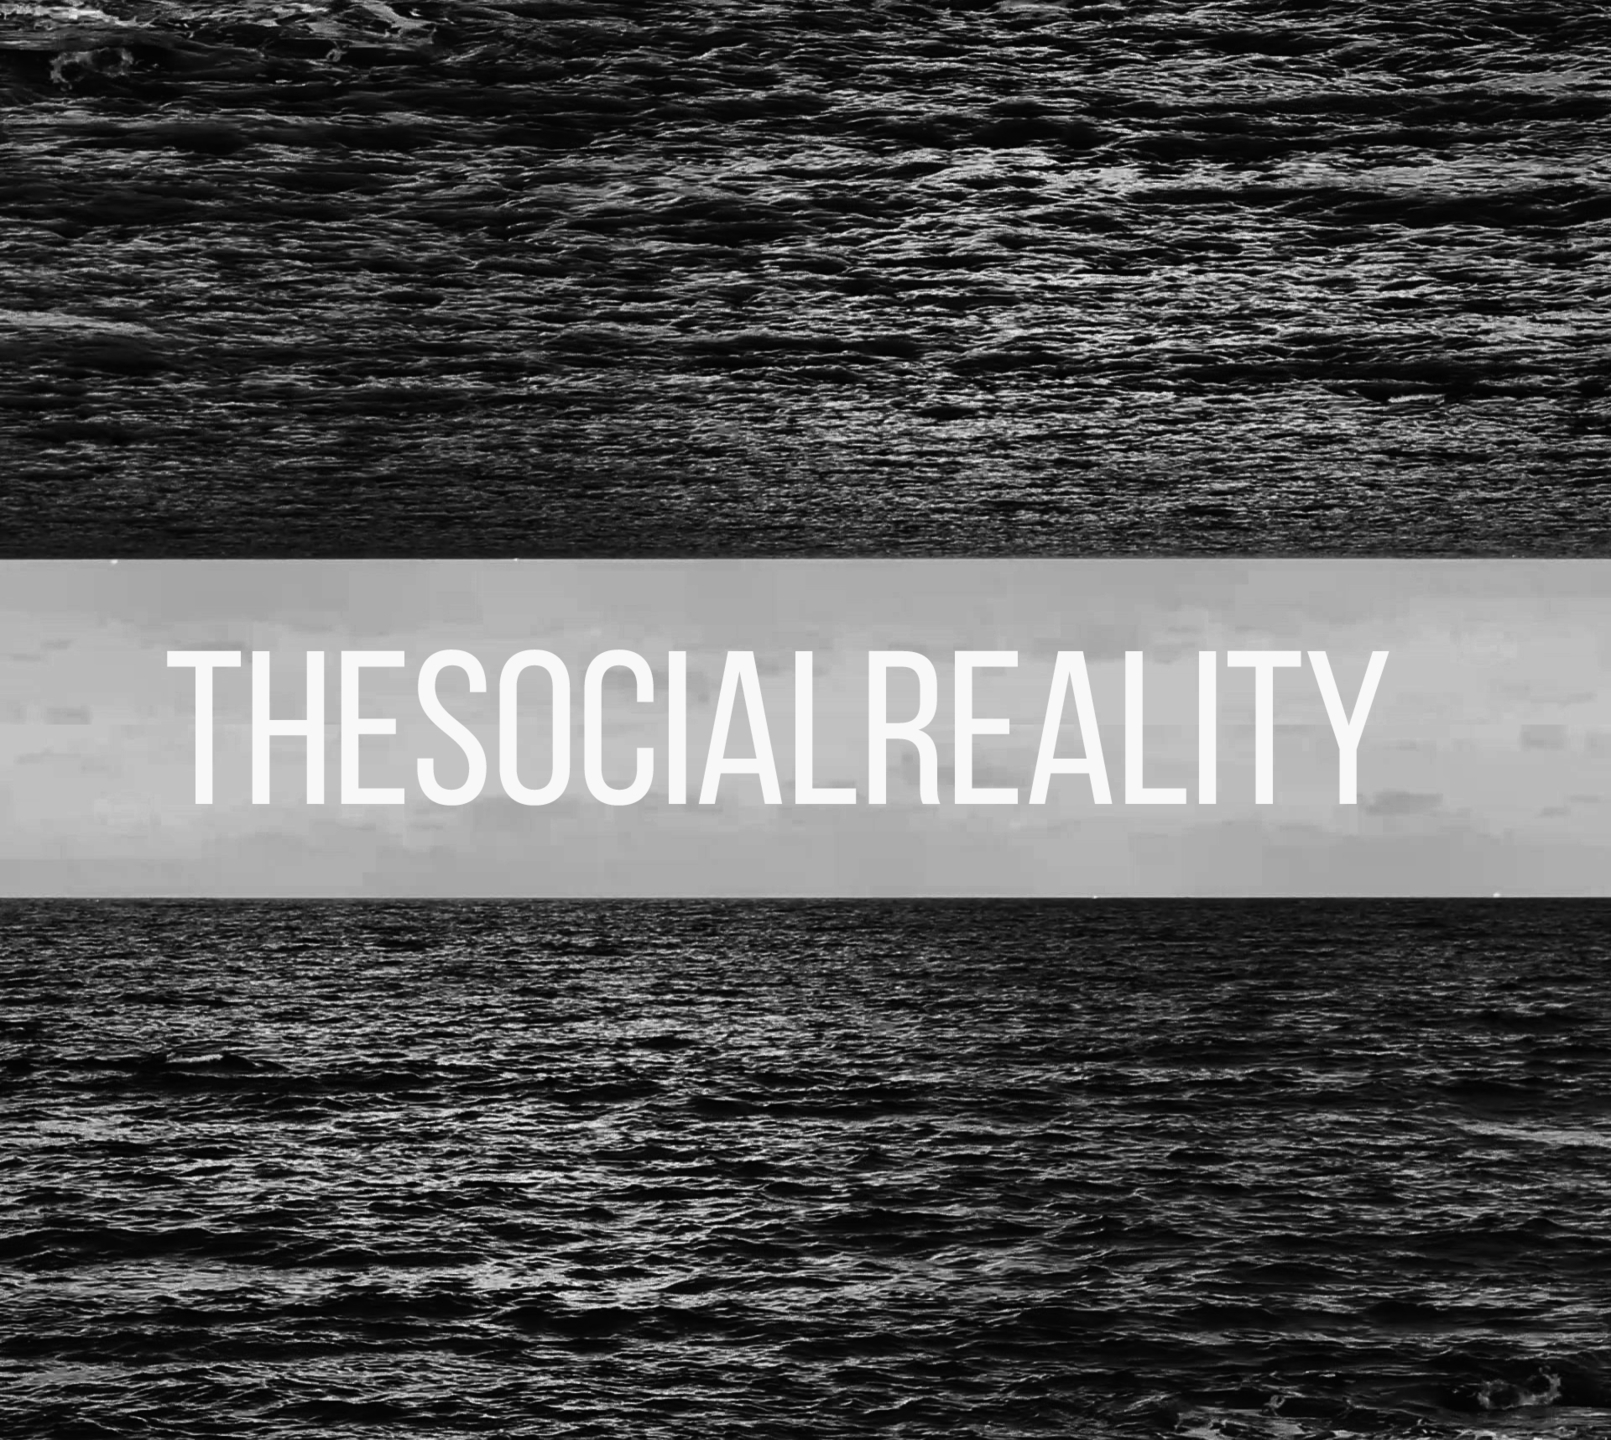 thesocialreality (@thesocialreality) Cover Image